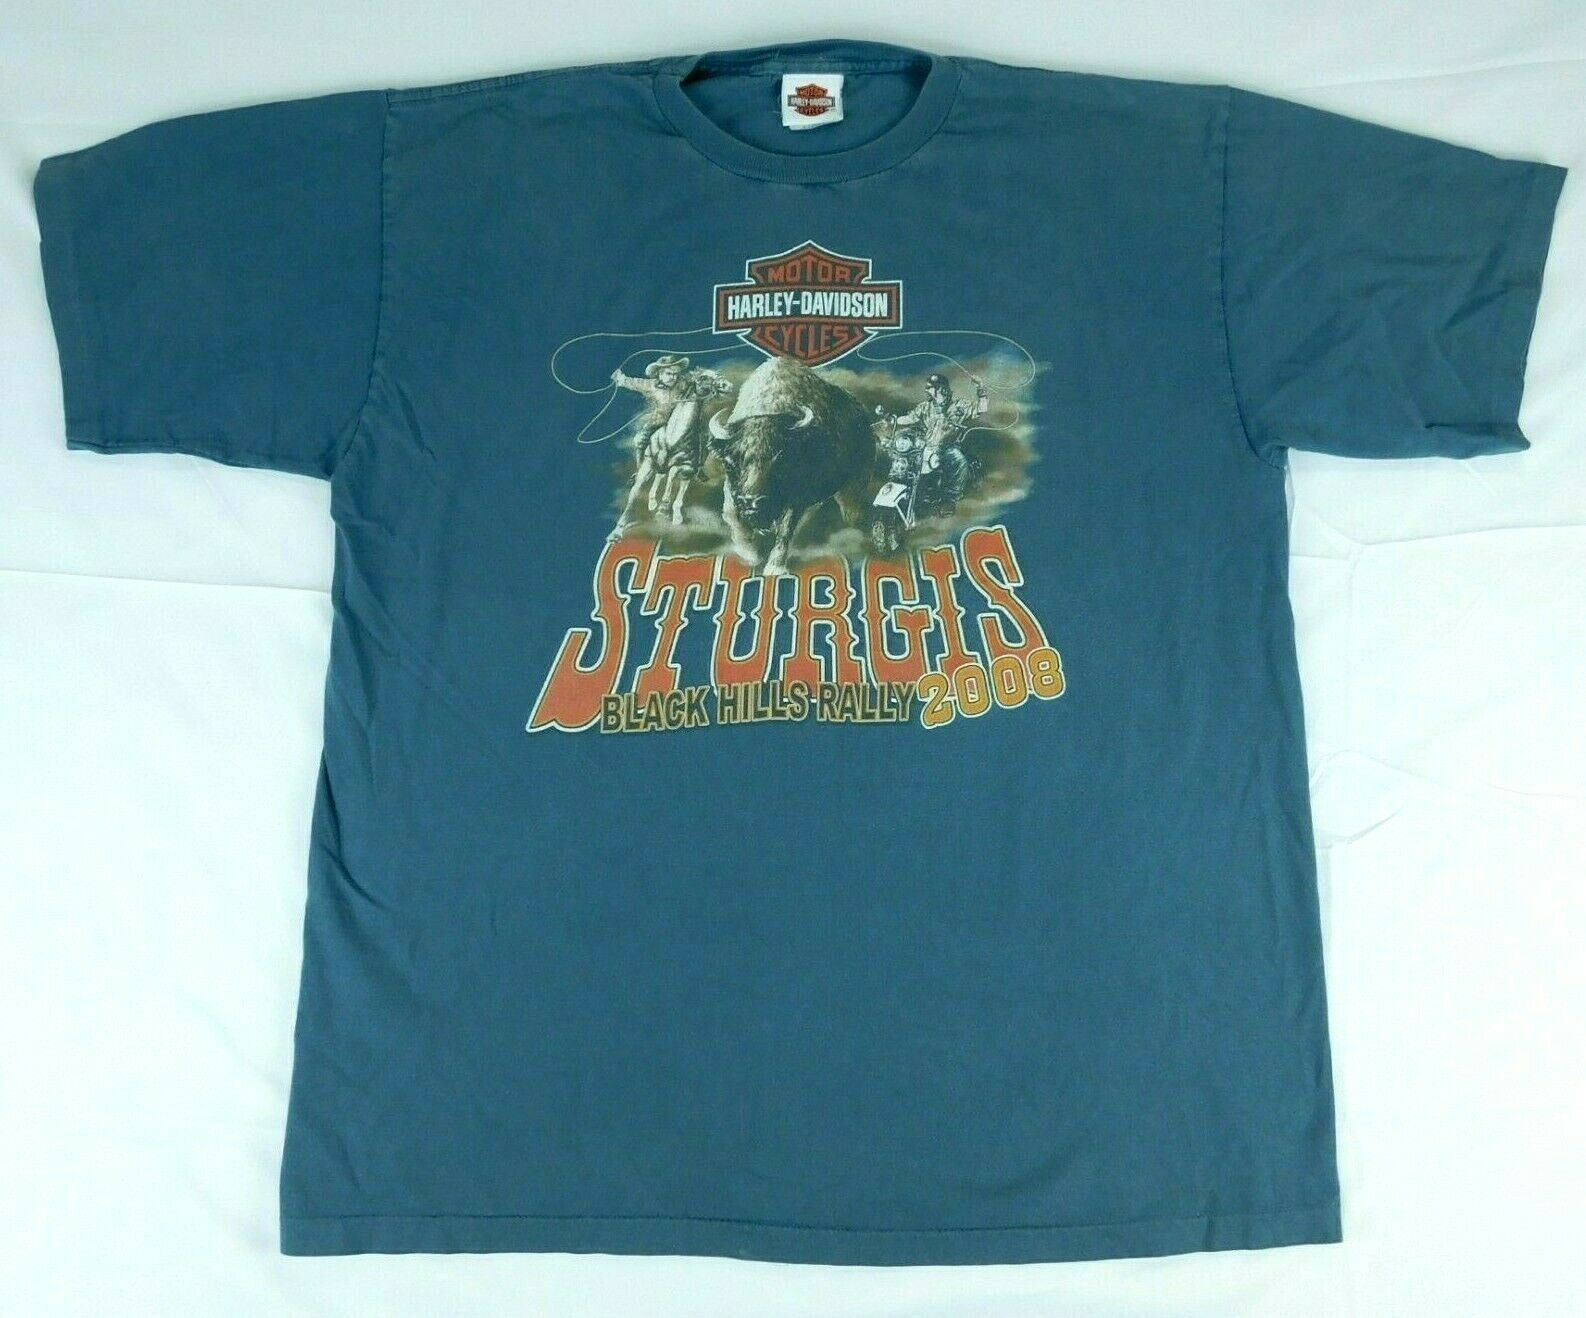 Harley Davidson Sturgis Black Hills Rally 2008 Buffalo Chip Blue T Shirt Sz XL image 3